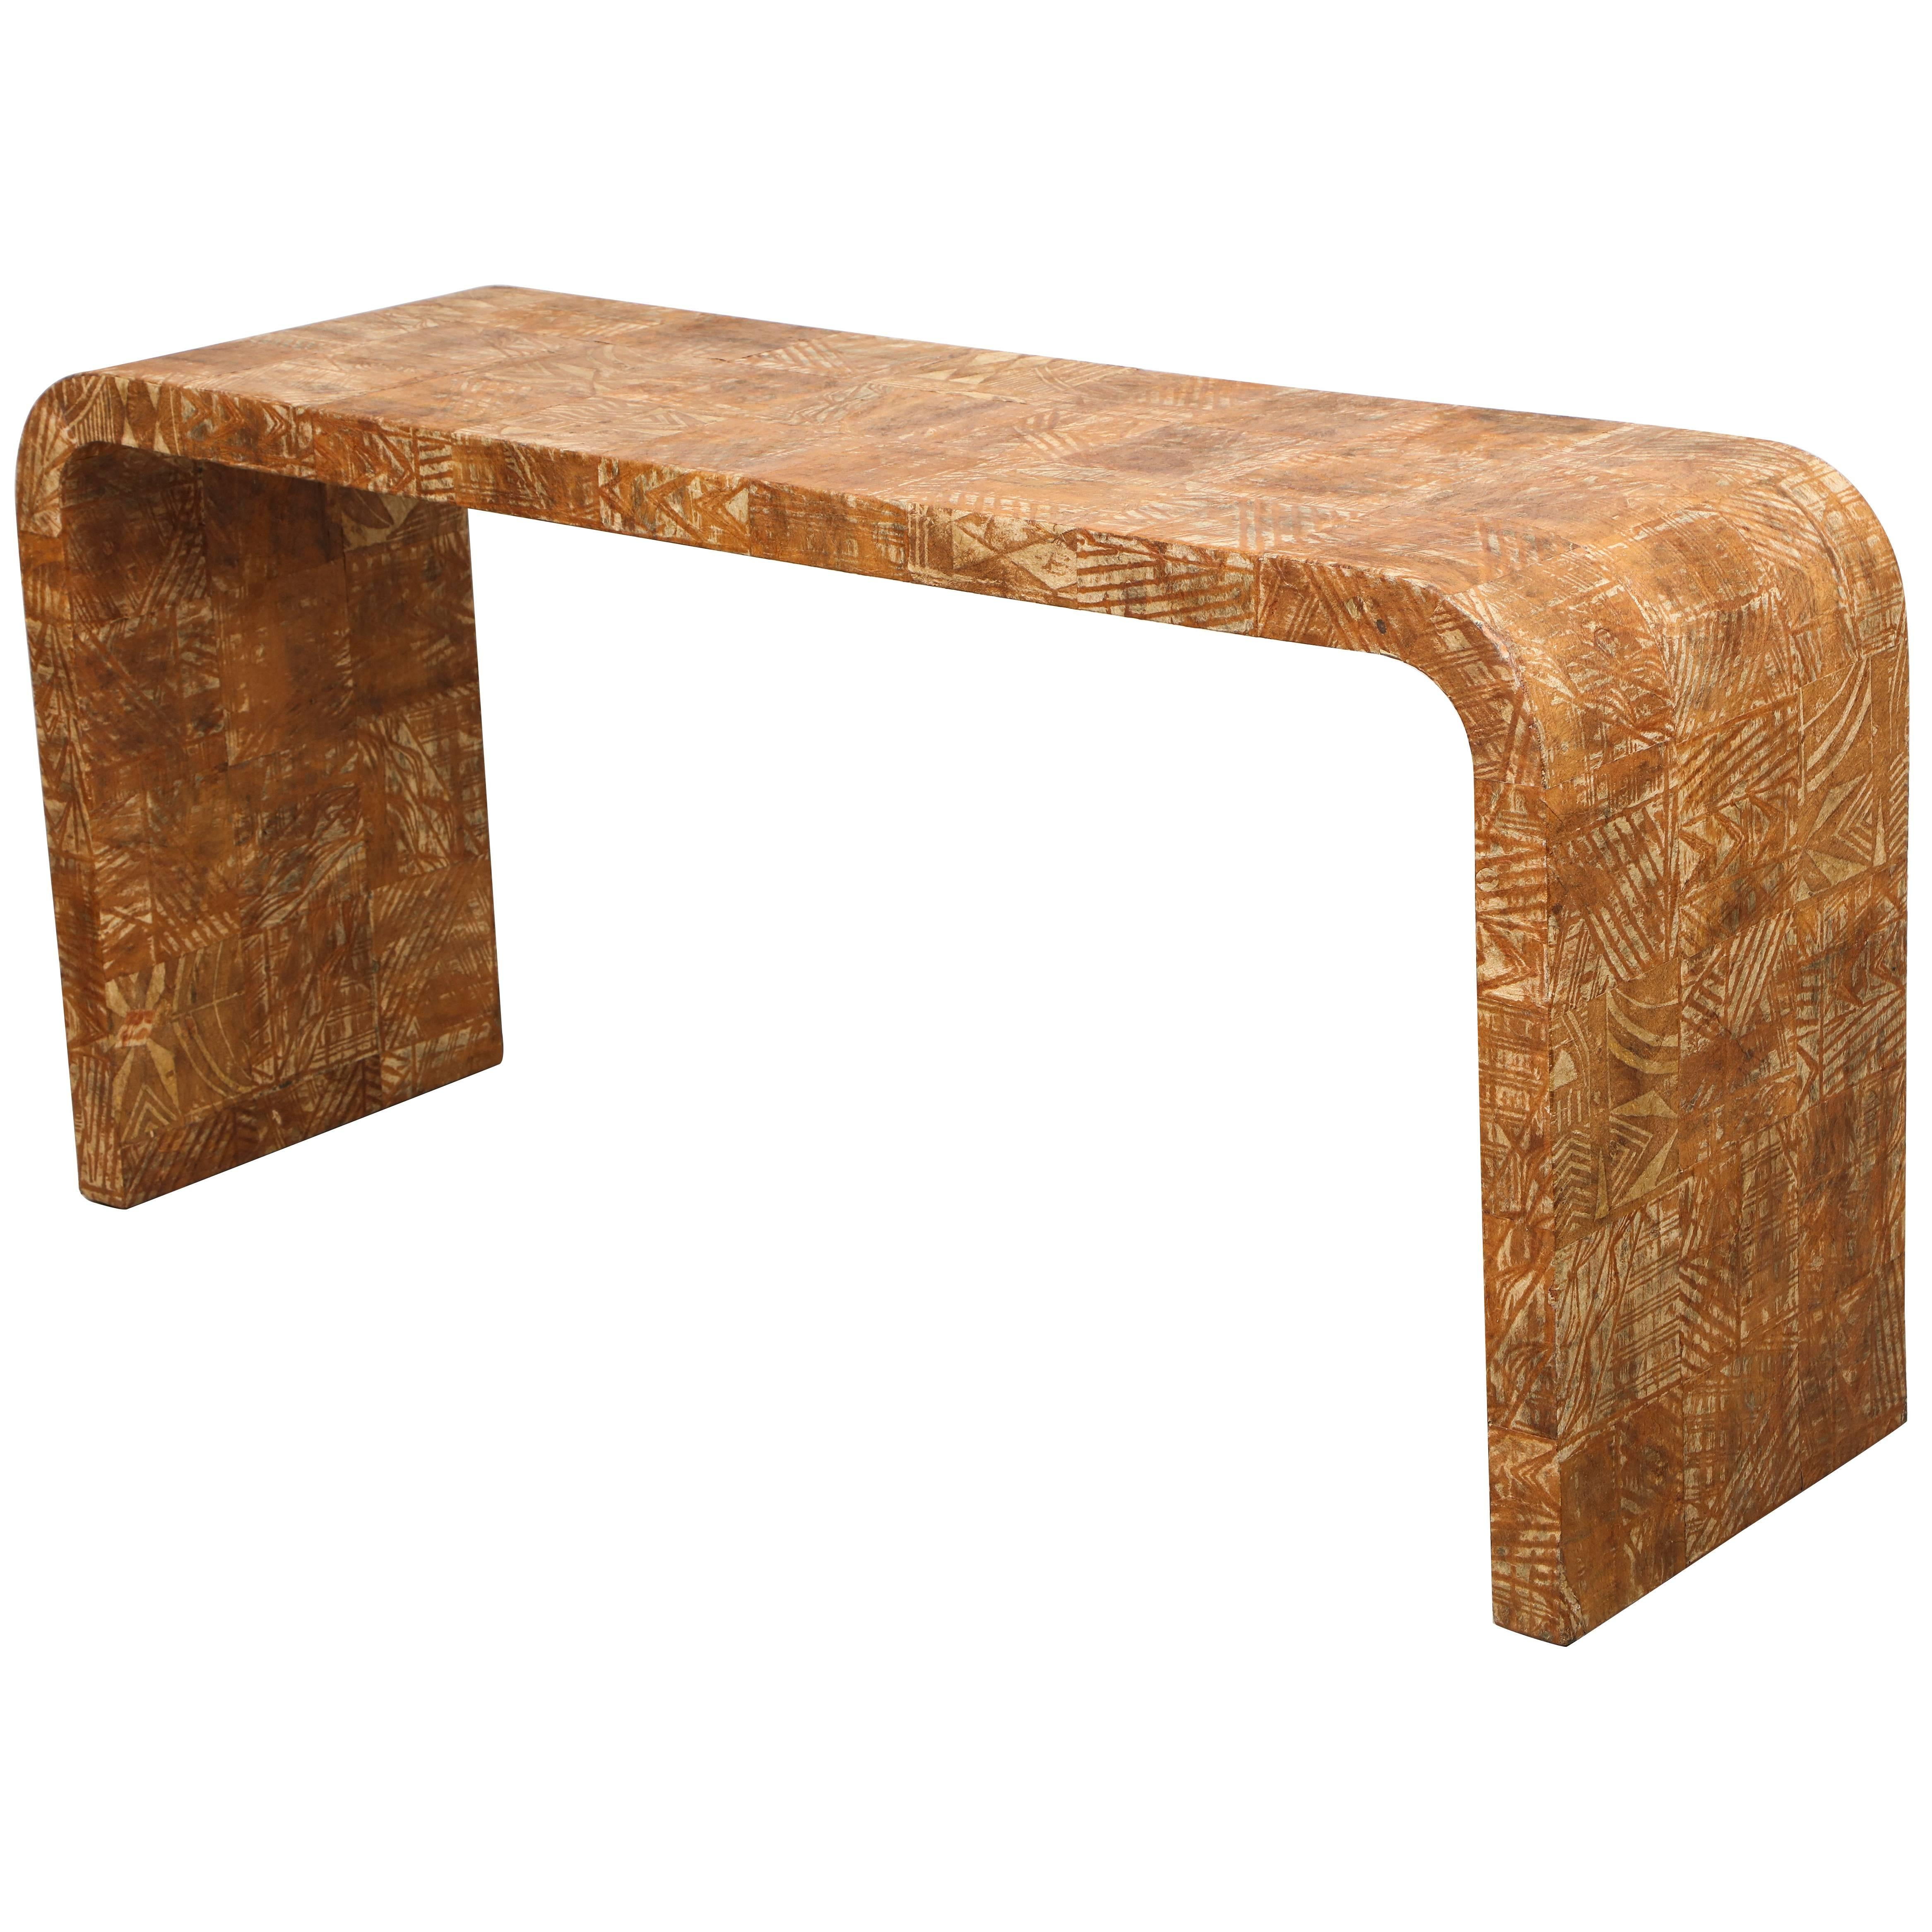 High Quality Unusual Hand Stenciled Bark Console Table